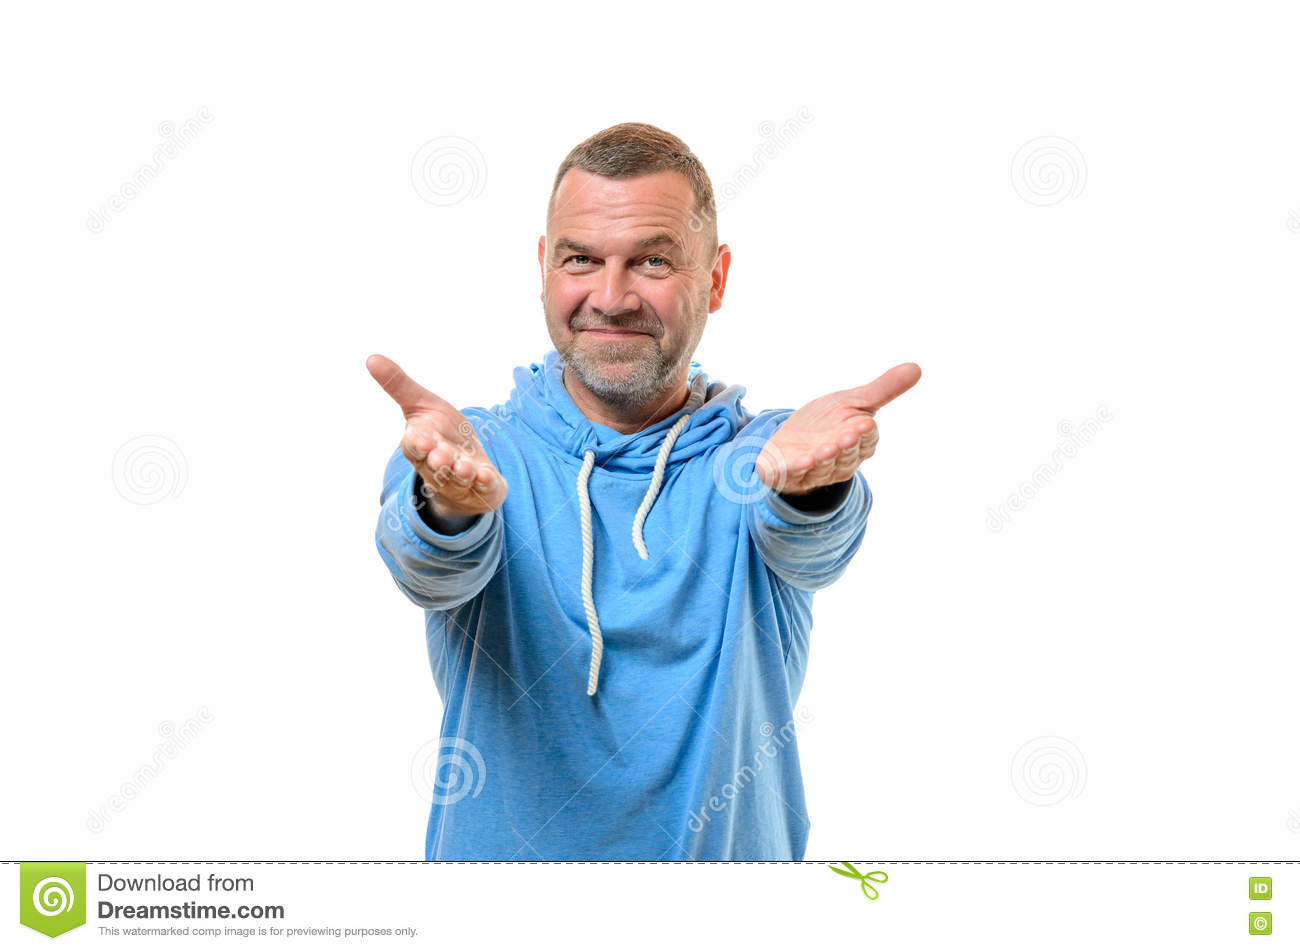 Welcoming Friendly Middle-aged Man Stock Photo - Image: 71675482